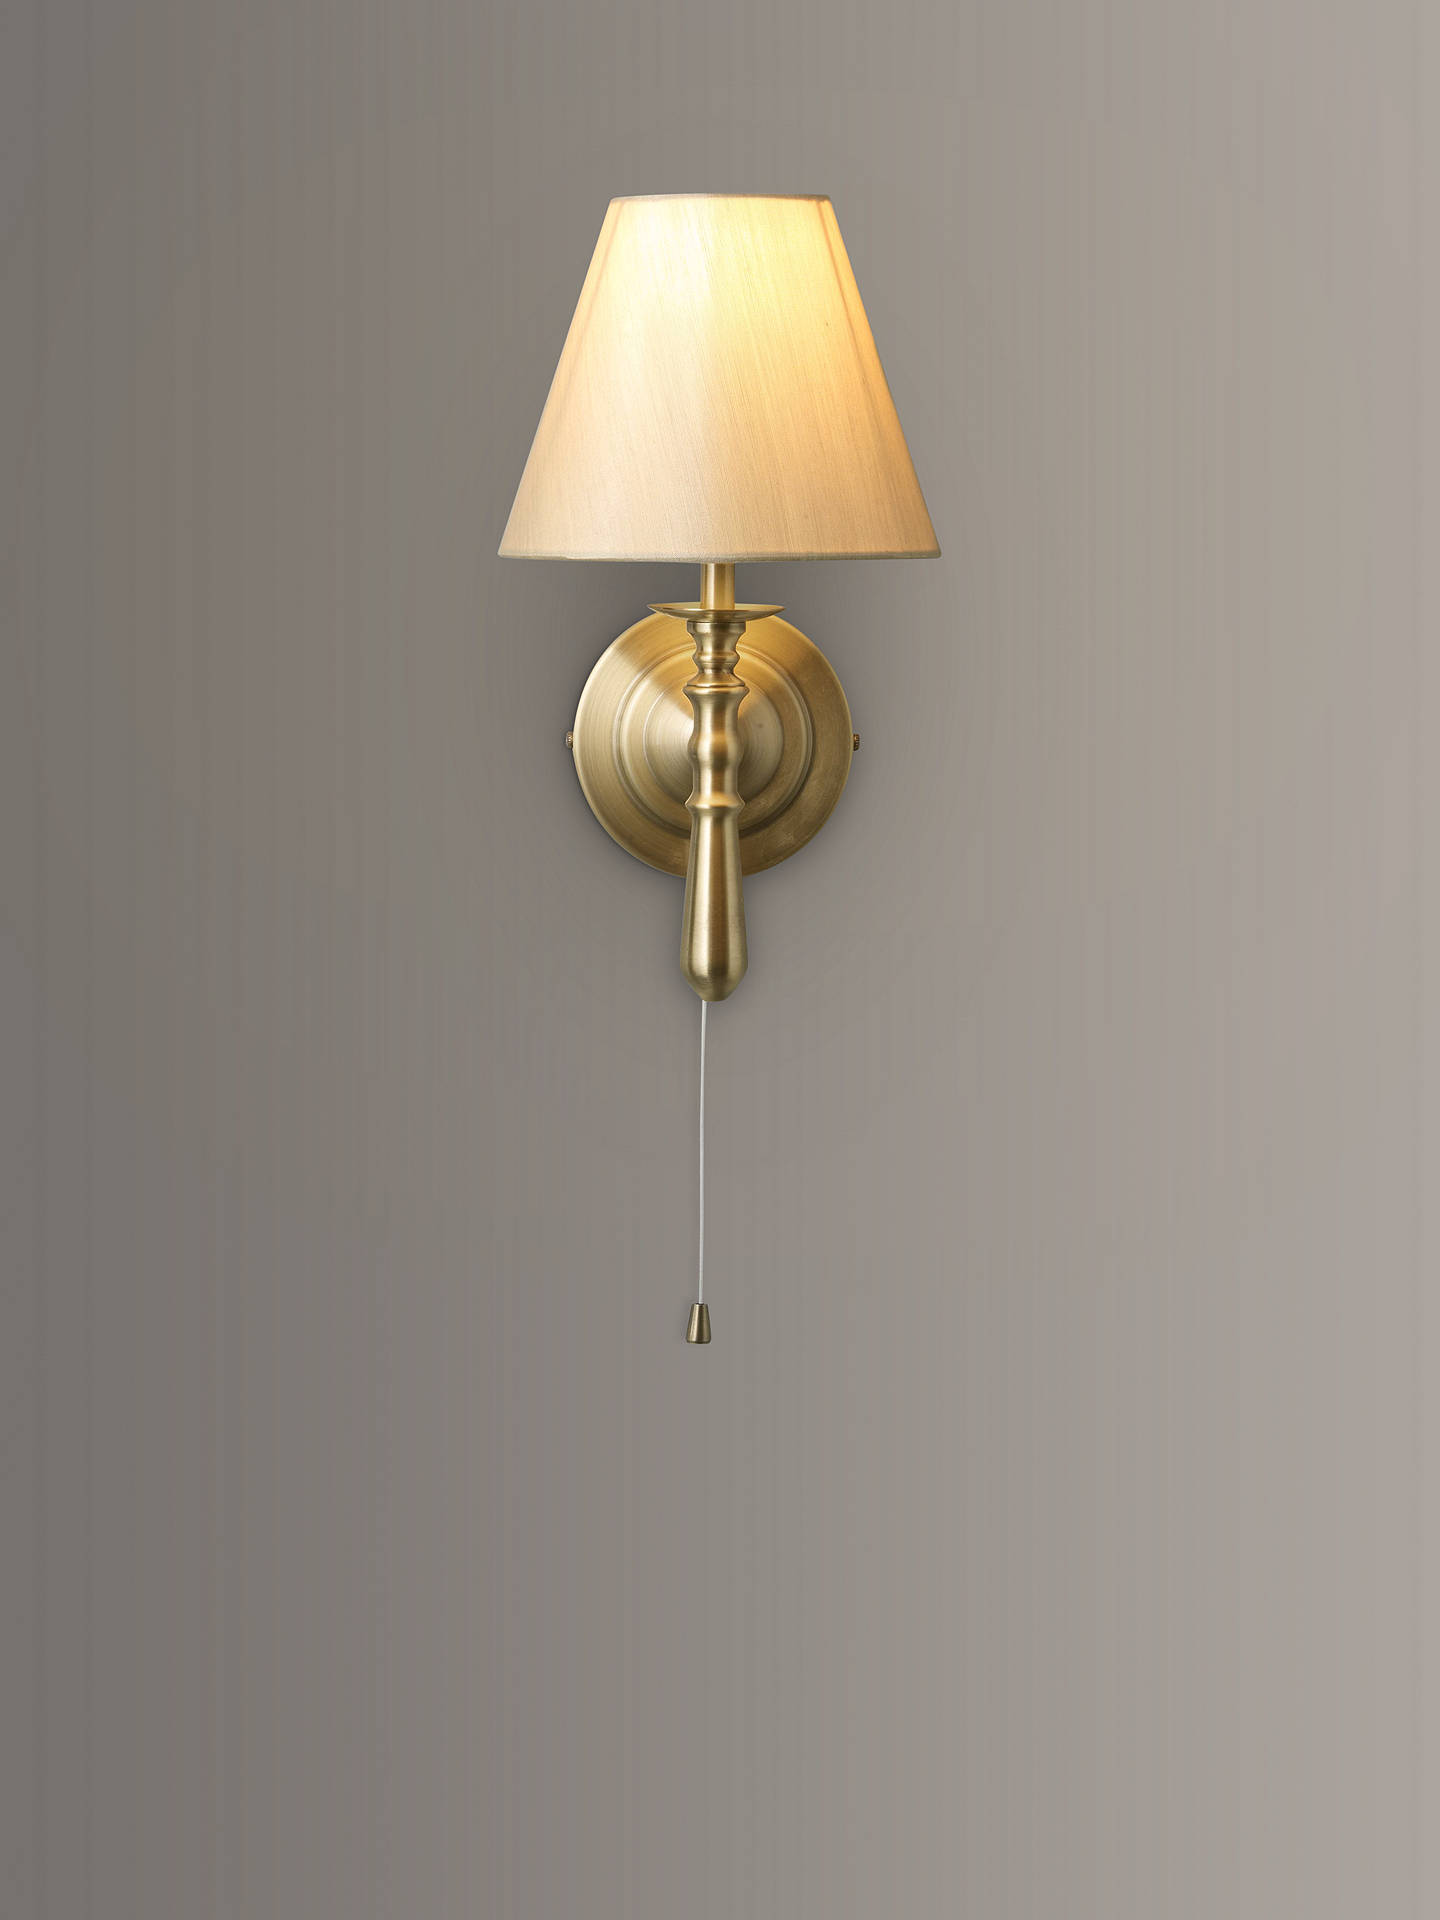 Buy John Lewis & Partners Sloane Wall Light, Antique Brass Online at johnlewis.com